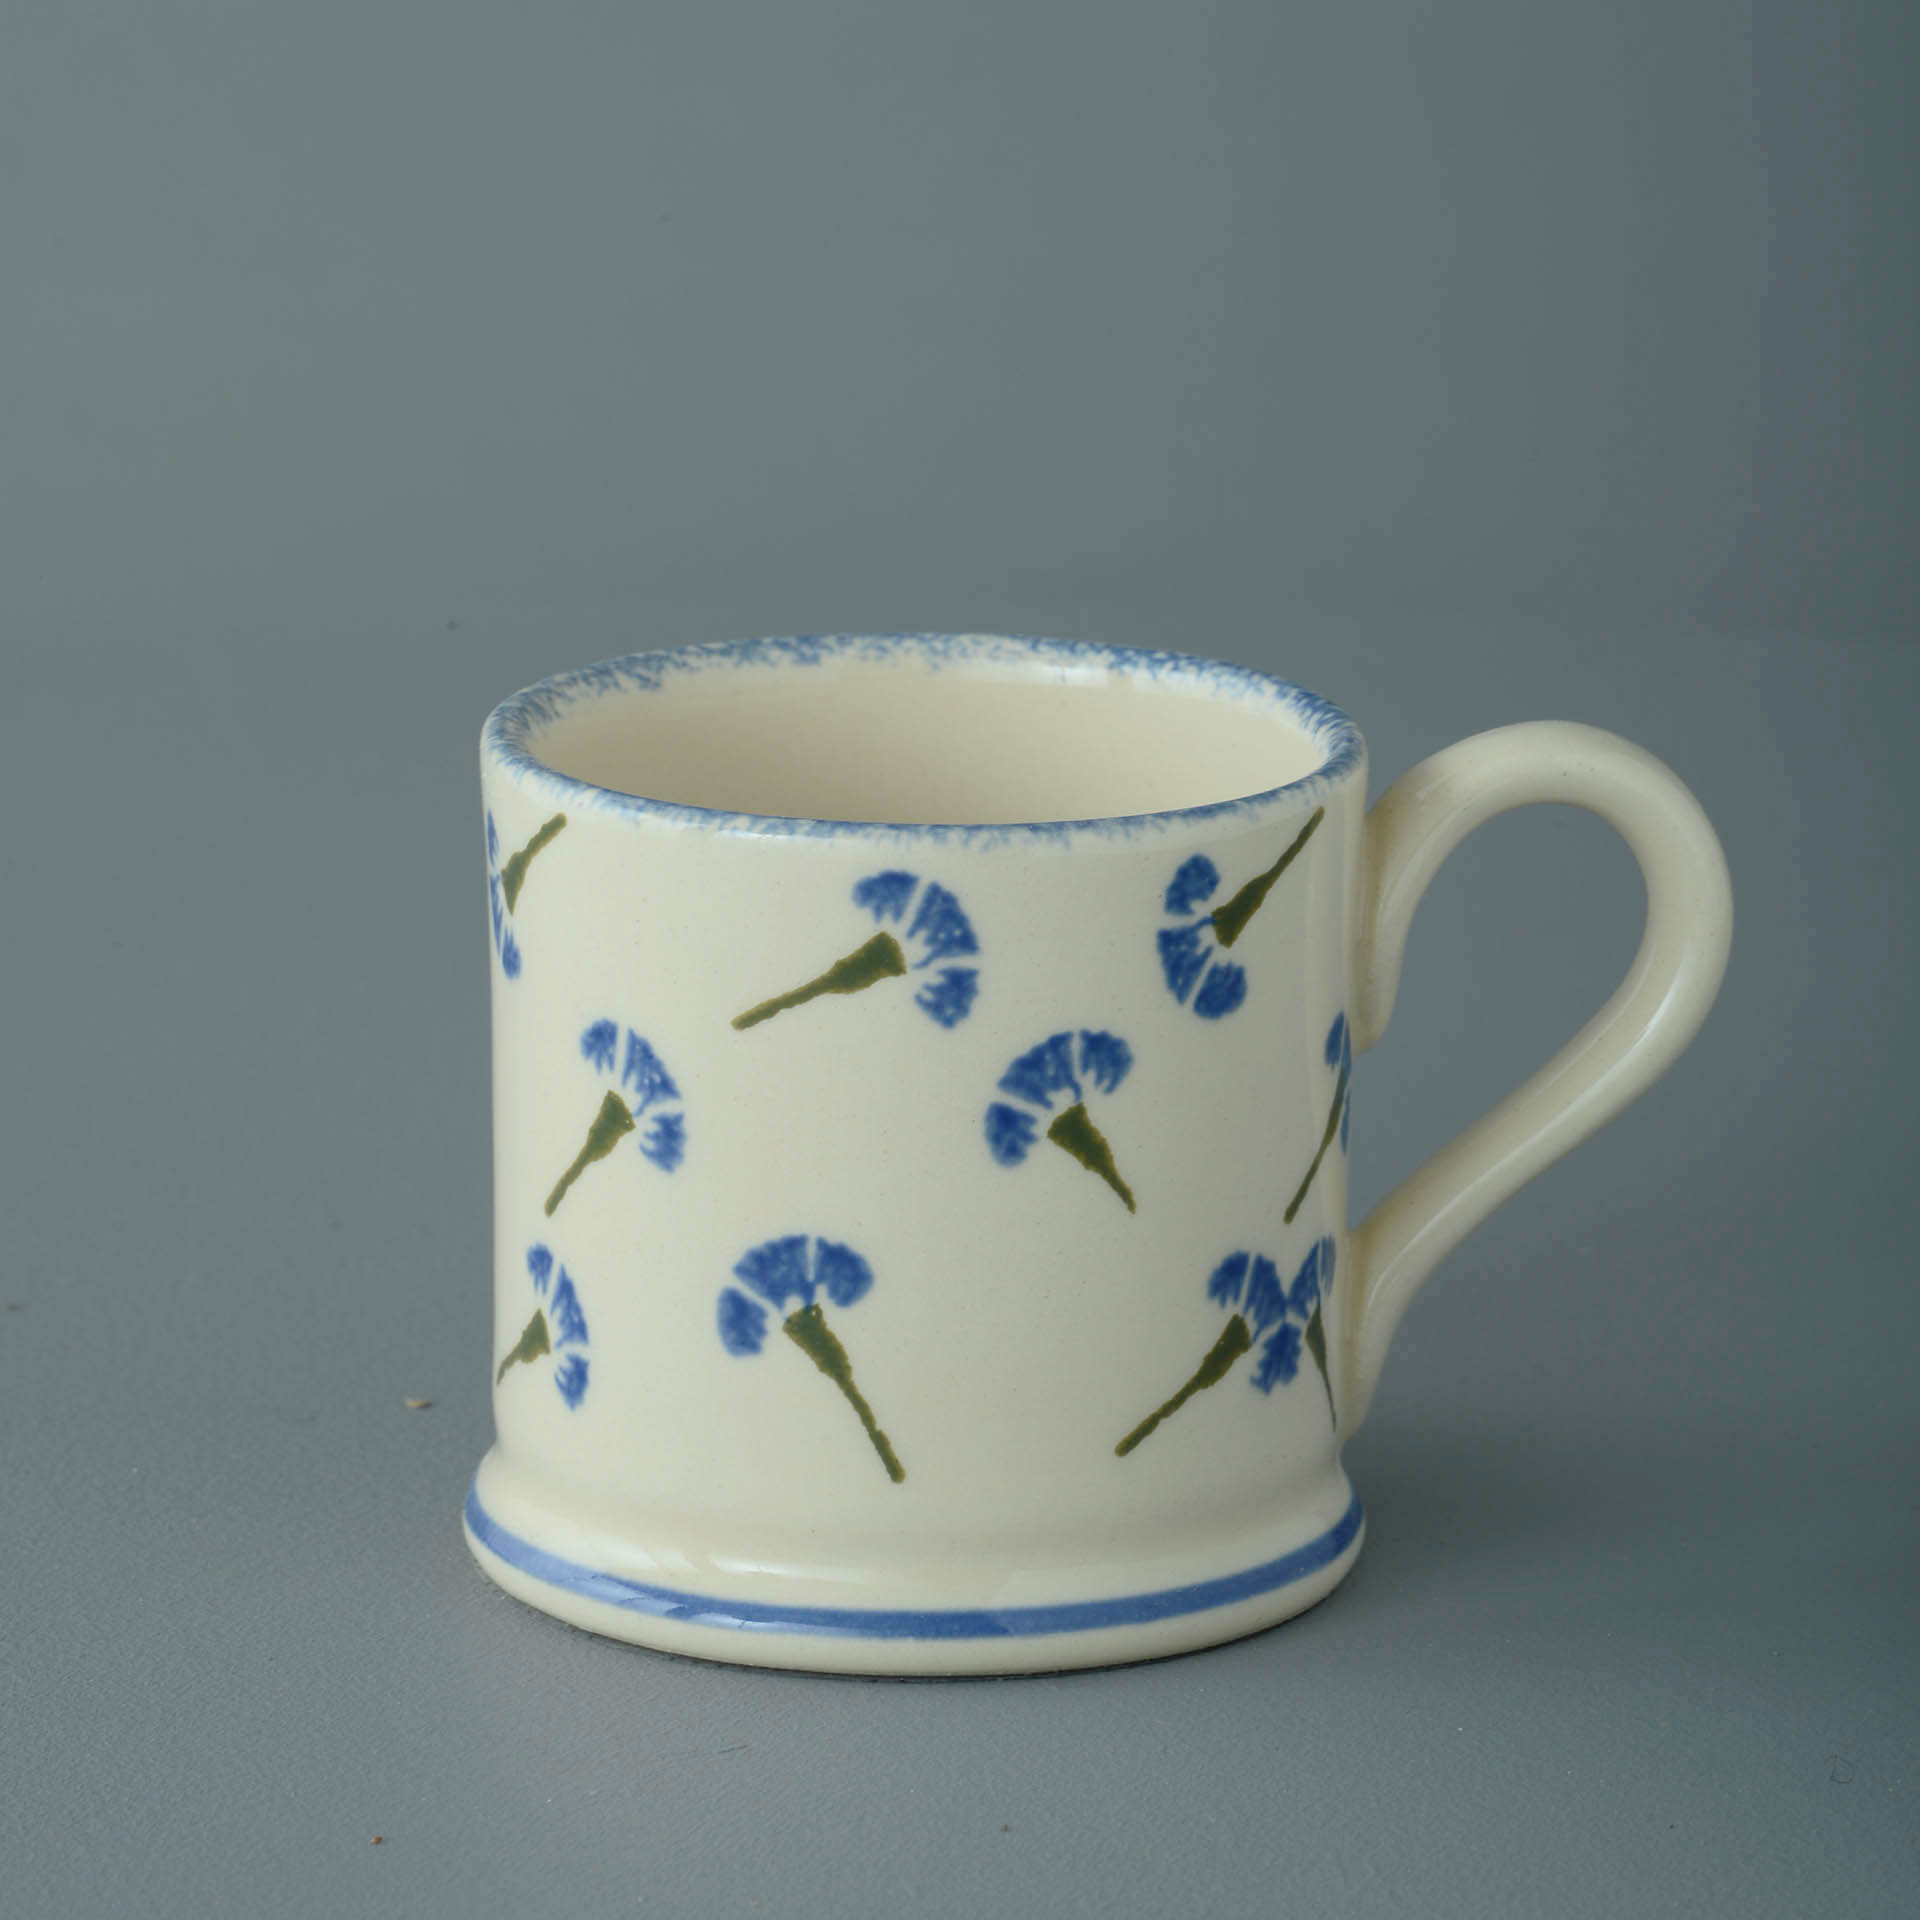 Cornflower 150ml Small Mug 7 x 7.3cm